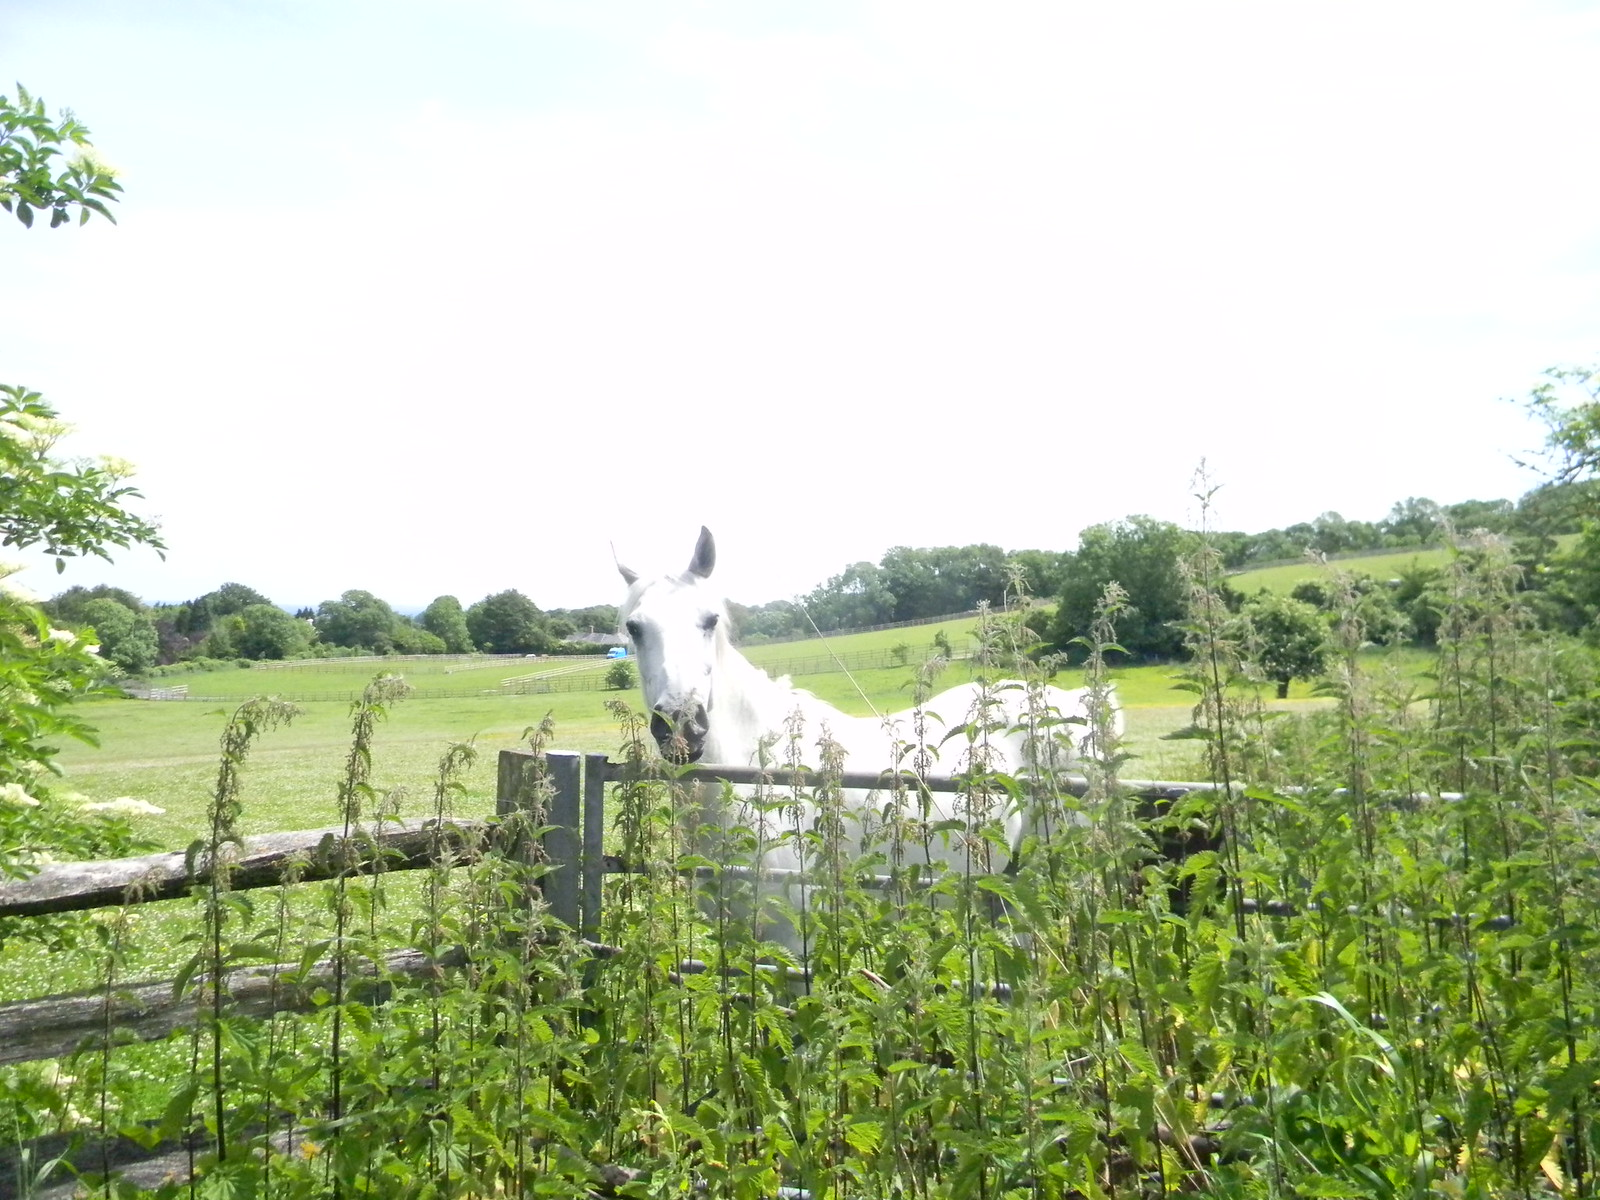 Horse in a field Hassocks to Brighton